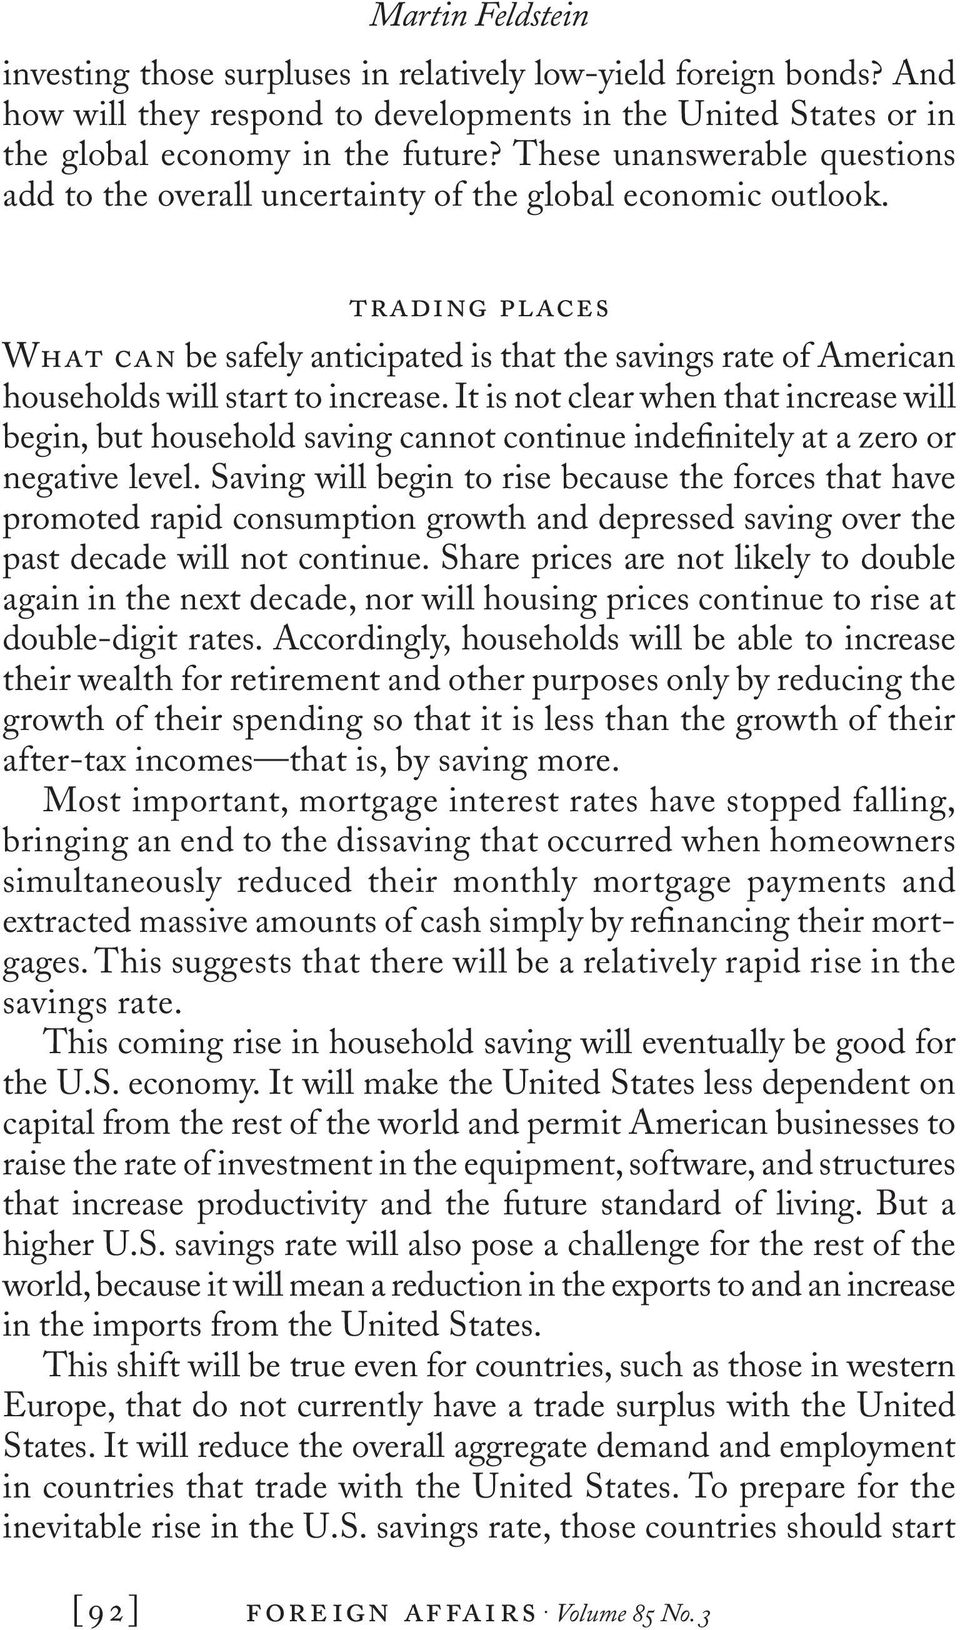 trading places What can be safely anticipated is that the savings rate of American households will start to increase.